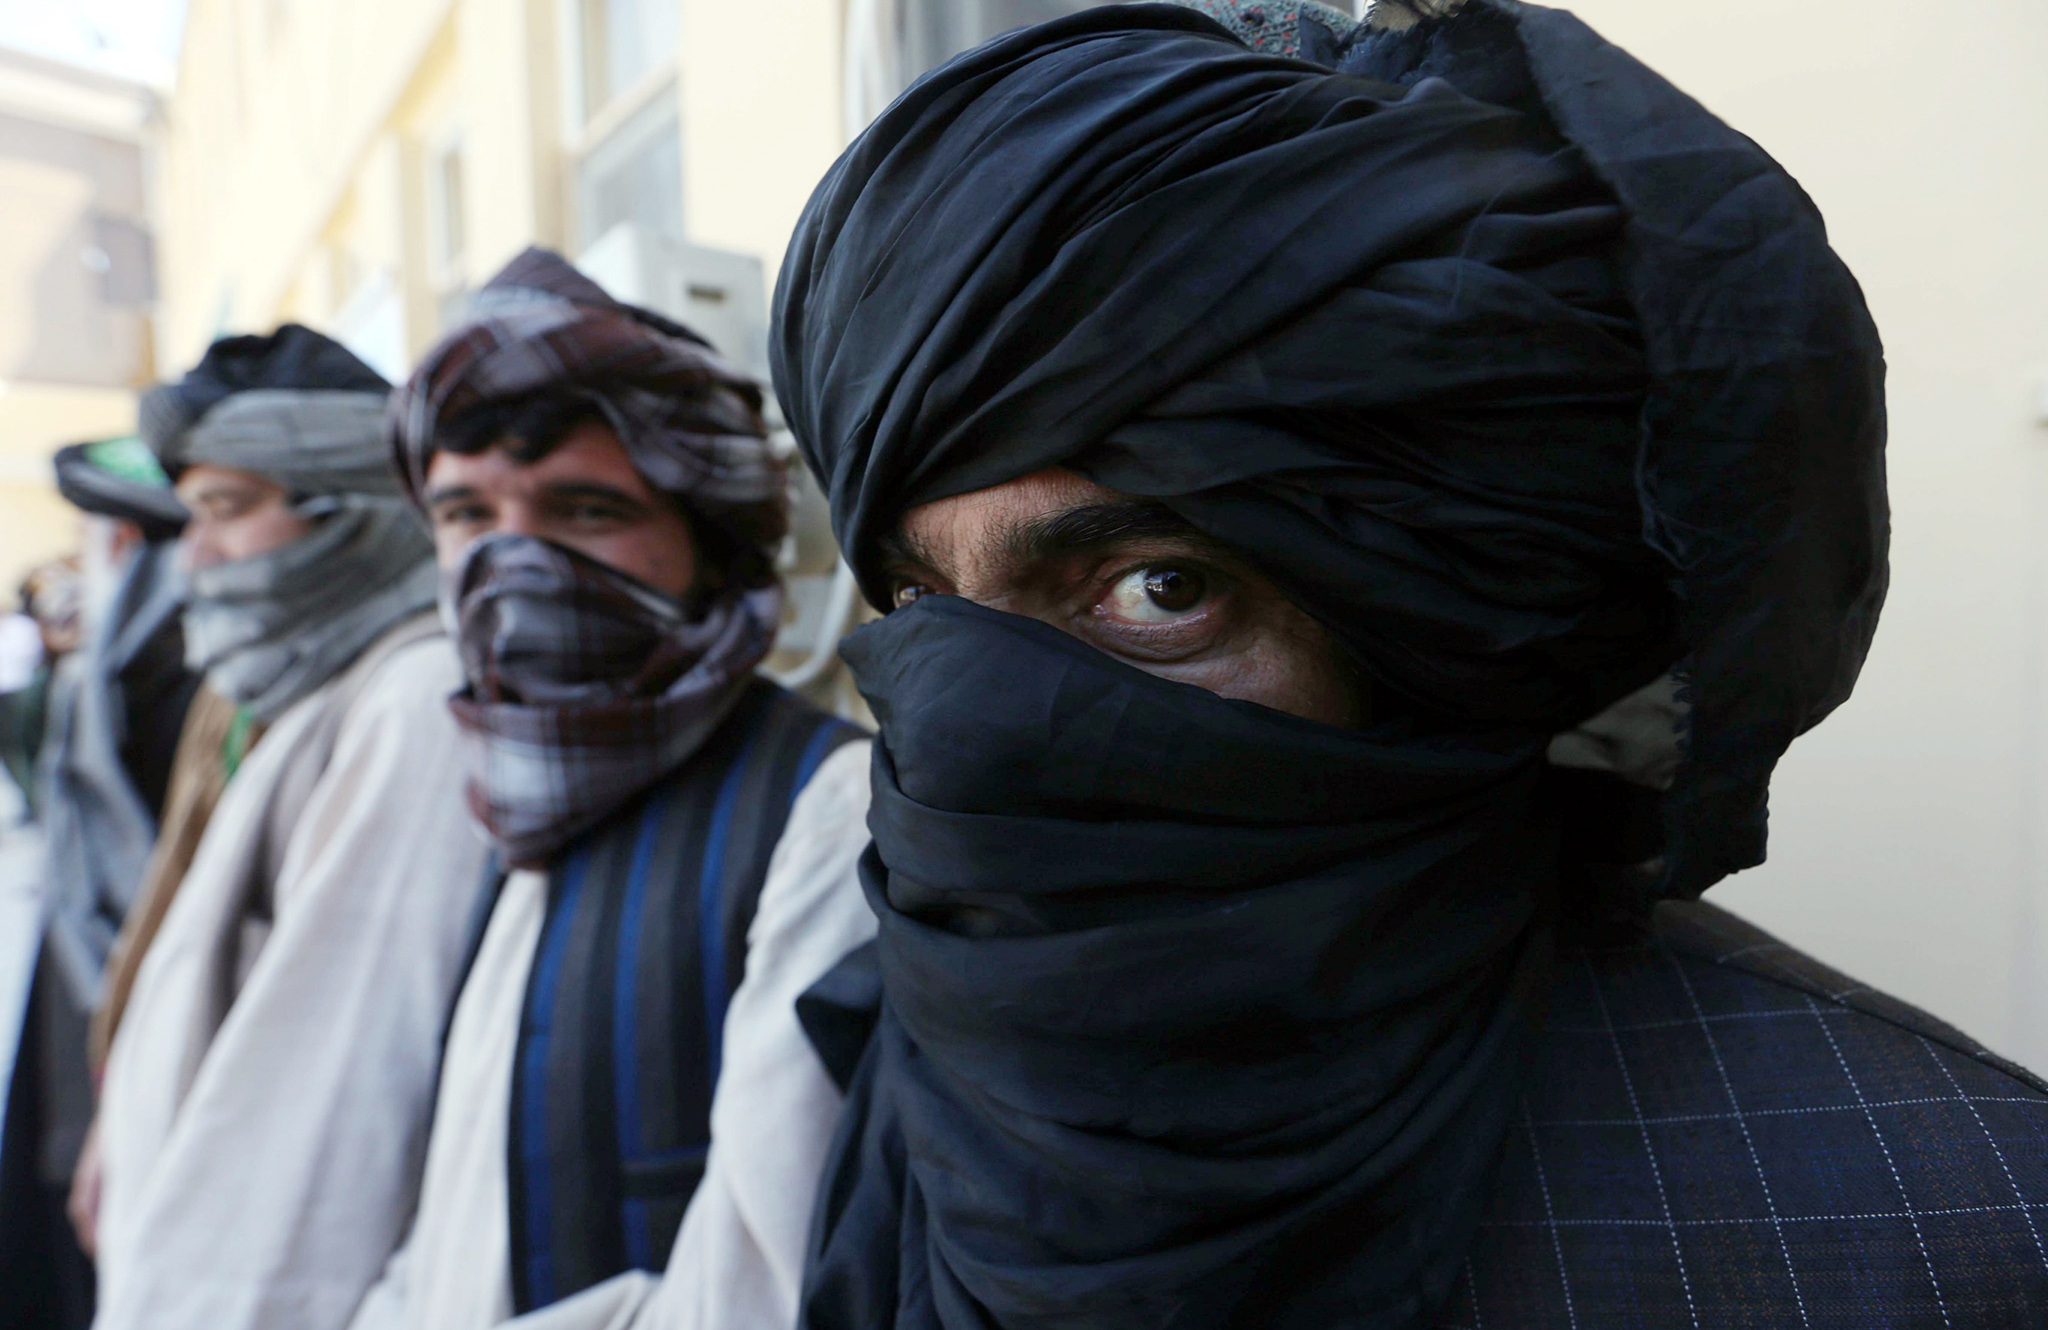 Former Taliban militants surrender their weapons during a reconciliation ceremony in Herat, Afghanistan, 03 August 2016. A group of 16 former Taliban militants on 03 August laid down their arms in Herat and joined the peace process. Under an amnesty launched by the former President Hamid Karzai and backed by the US in November 2004, hundreds of anti-government militants have so far surrendered to the government.